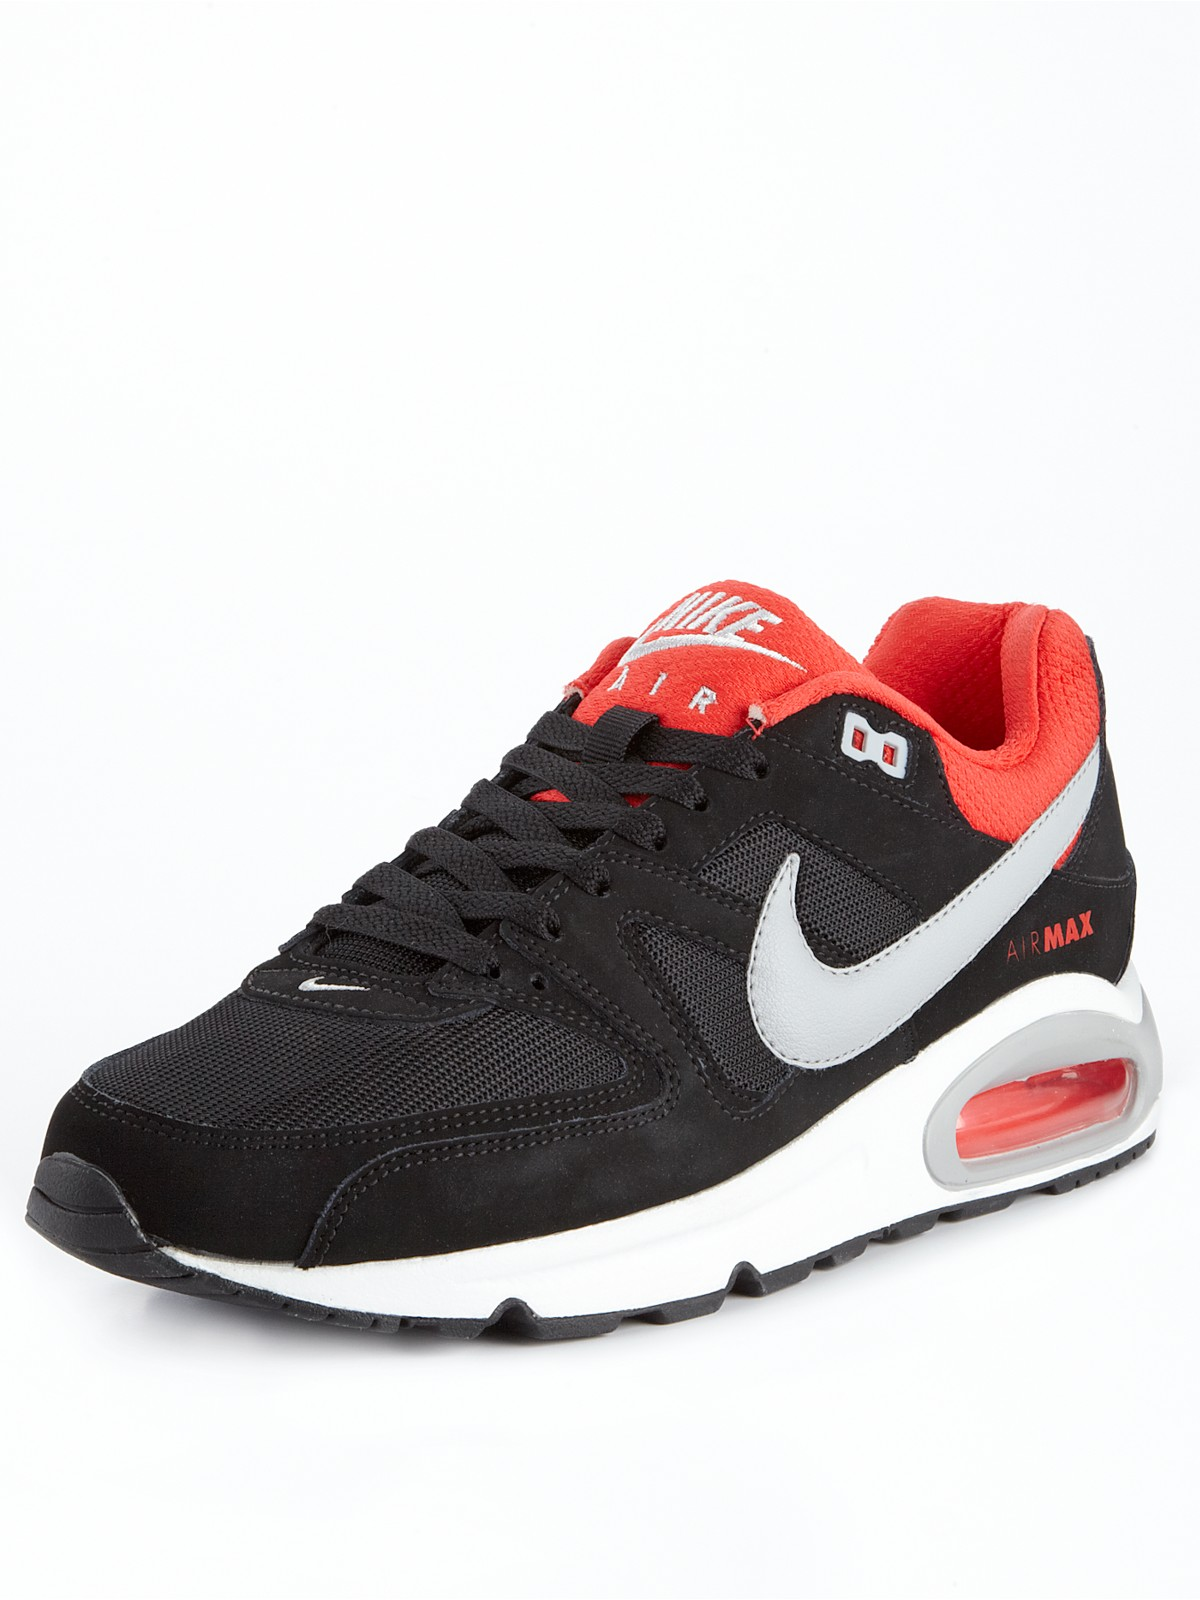 nike nike air max command in red for men black white red. Black Bedroom Furniture Sets. Home Design Ideas